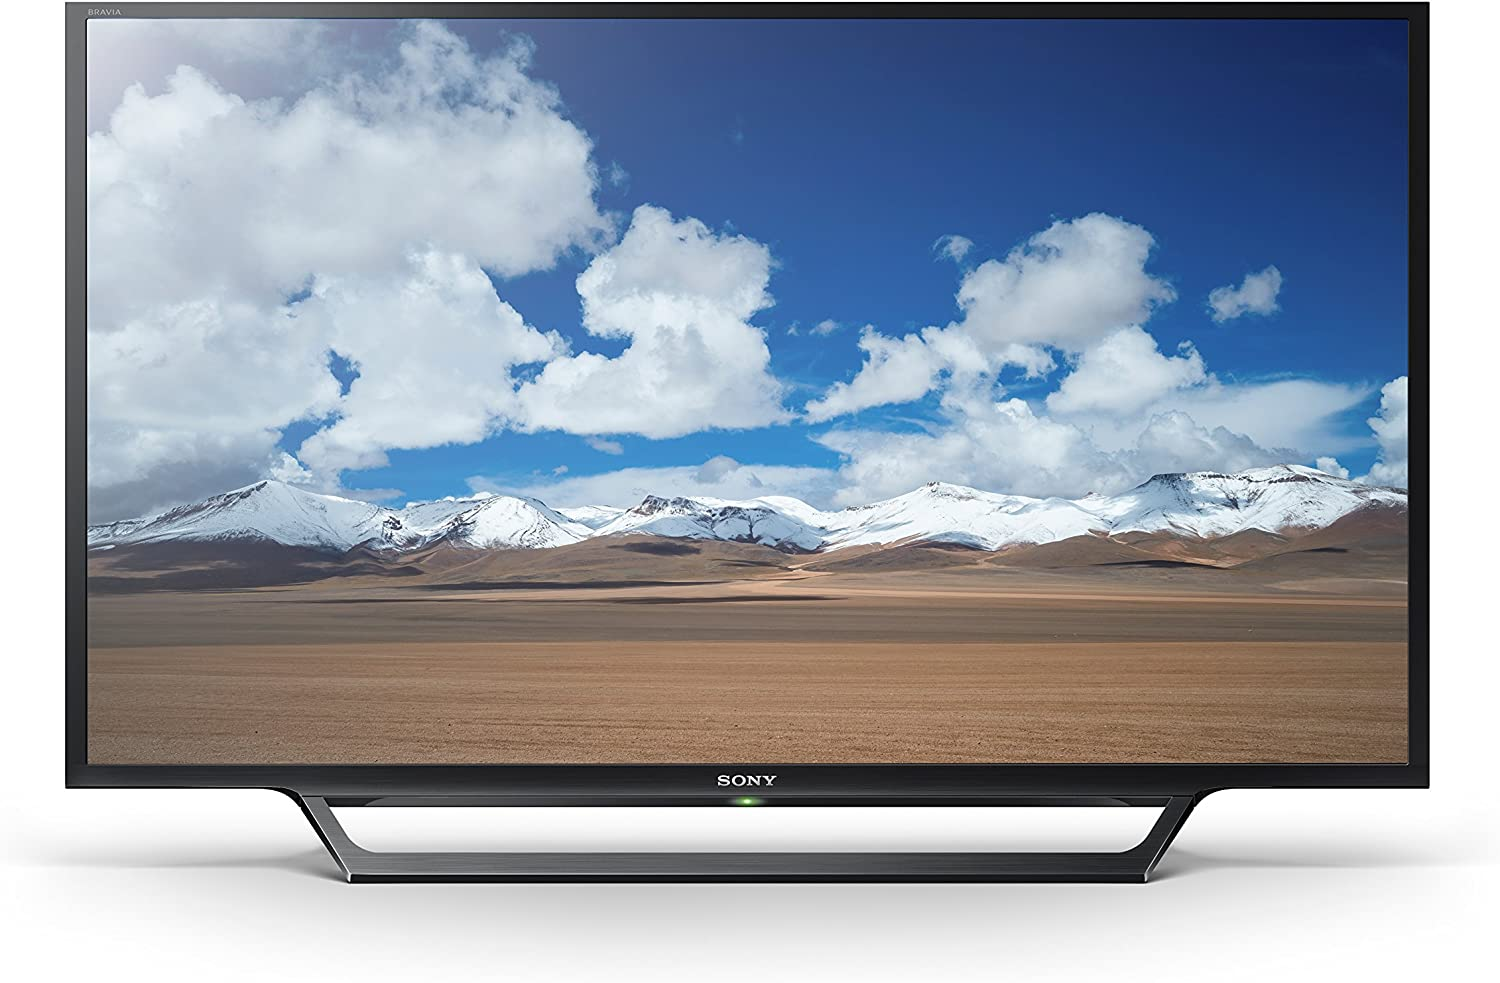 6 Best 32 Inch TVs for Gaming (2020)